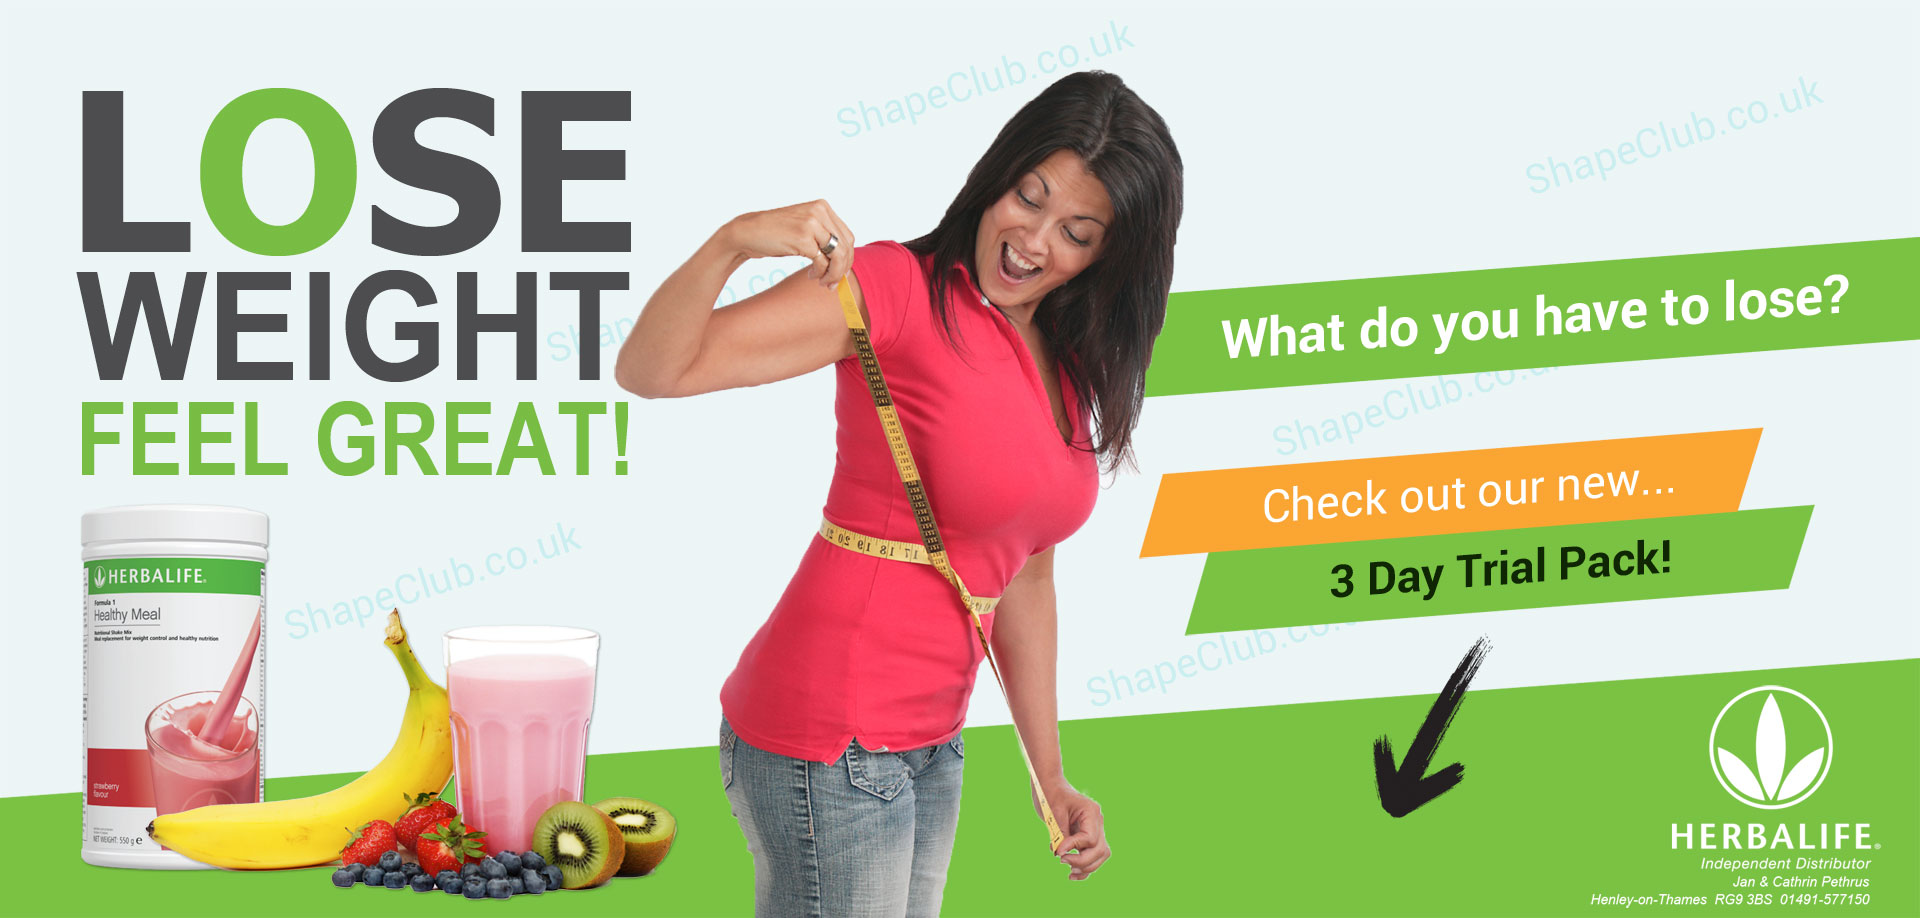 herbalife 3 day trial weight loss